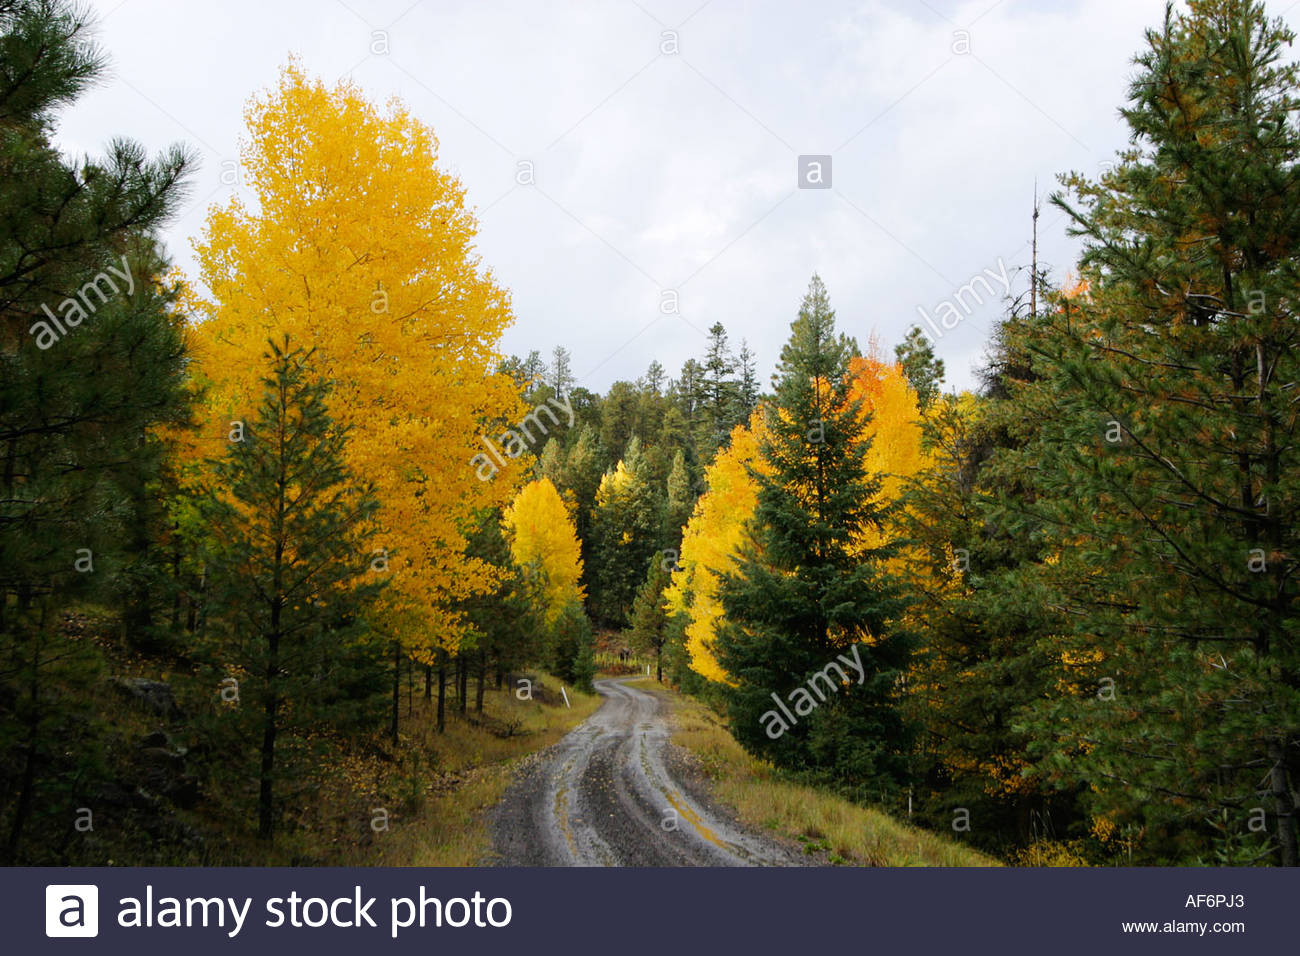 aspens-turning-to-fall-colors-along-forest-road-in-apache-national-AF6PJ3.jpg